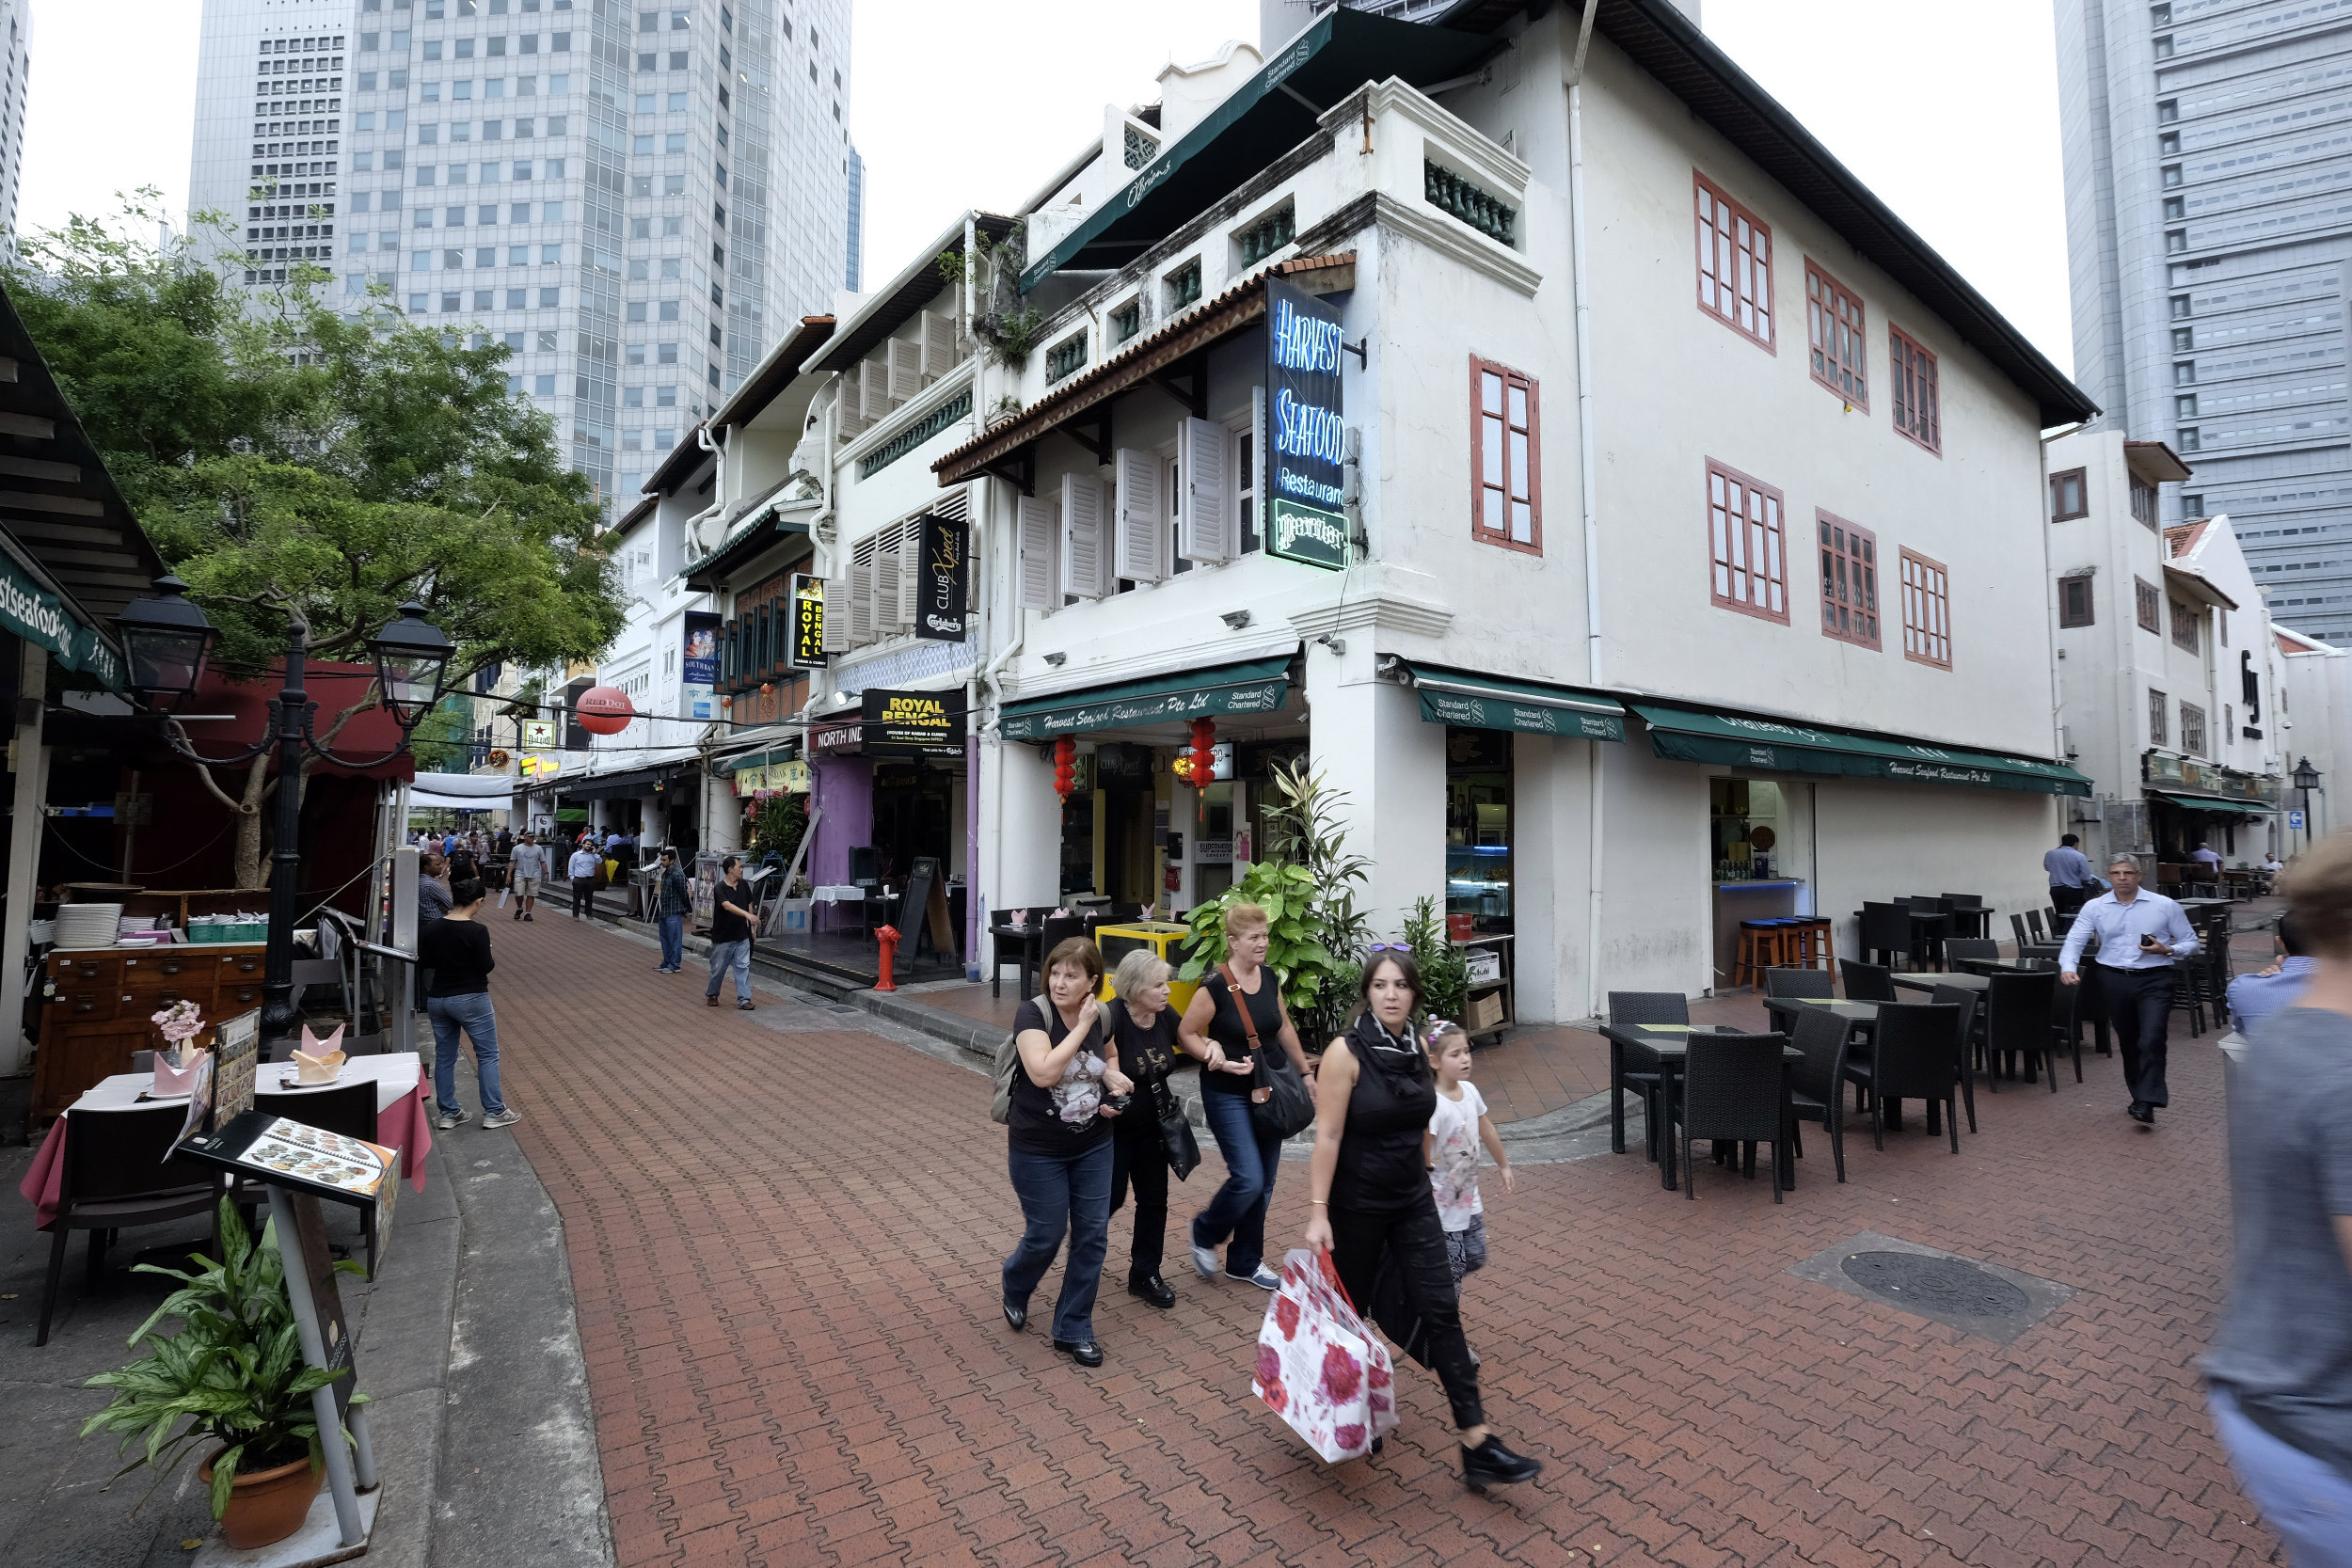 Singapore Langs de Singapore Rivier Boat Quay Restaurantjes Straatbeeld